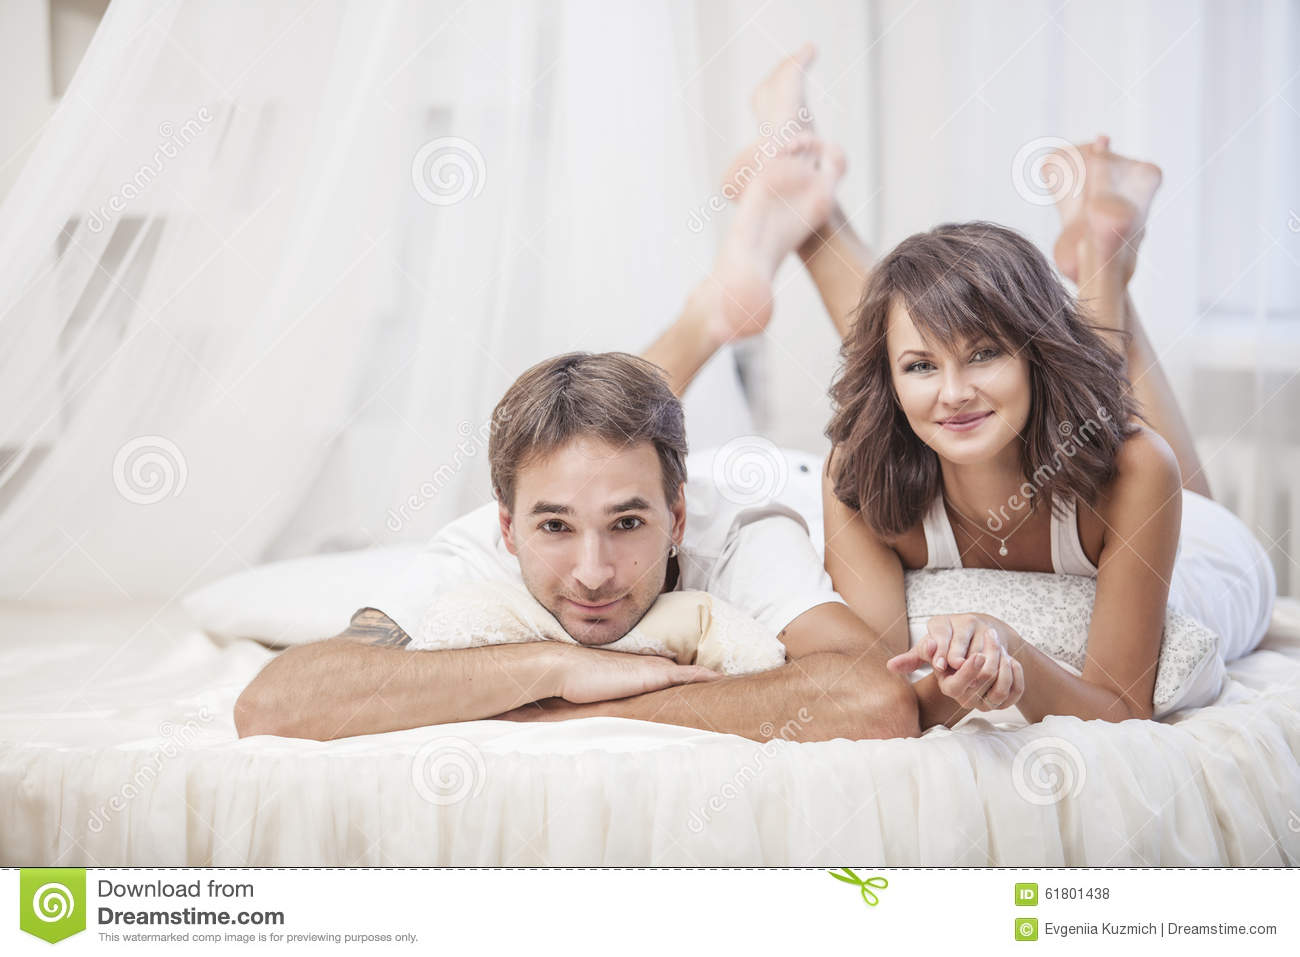 Men and women love in bed